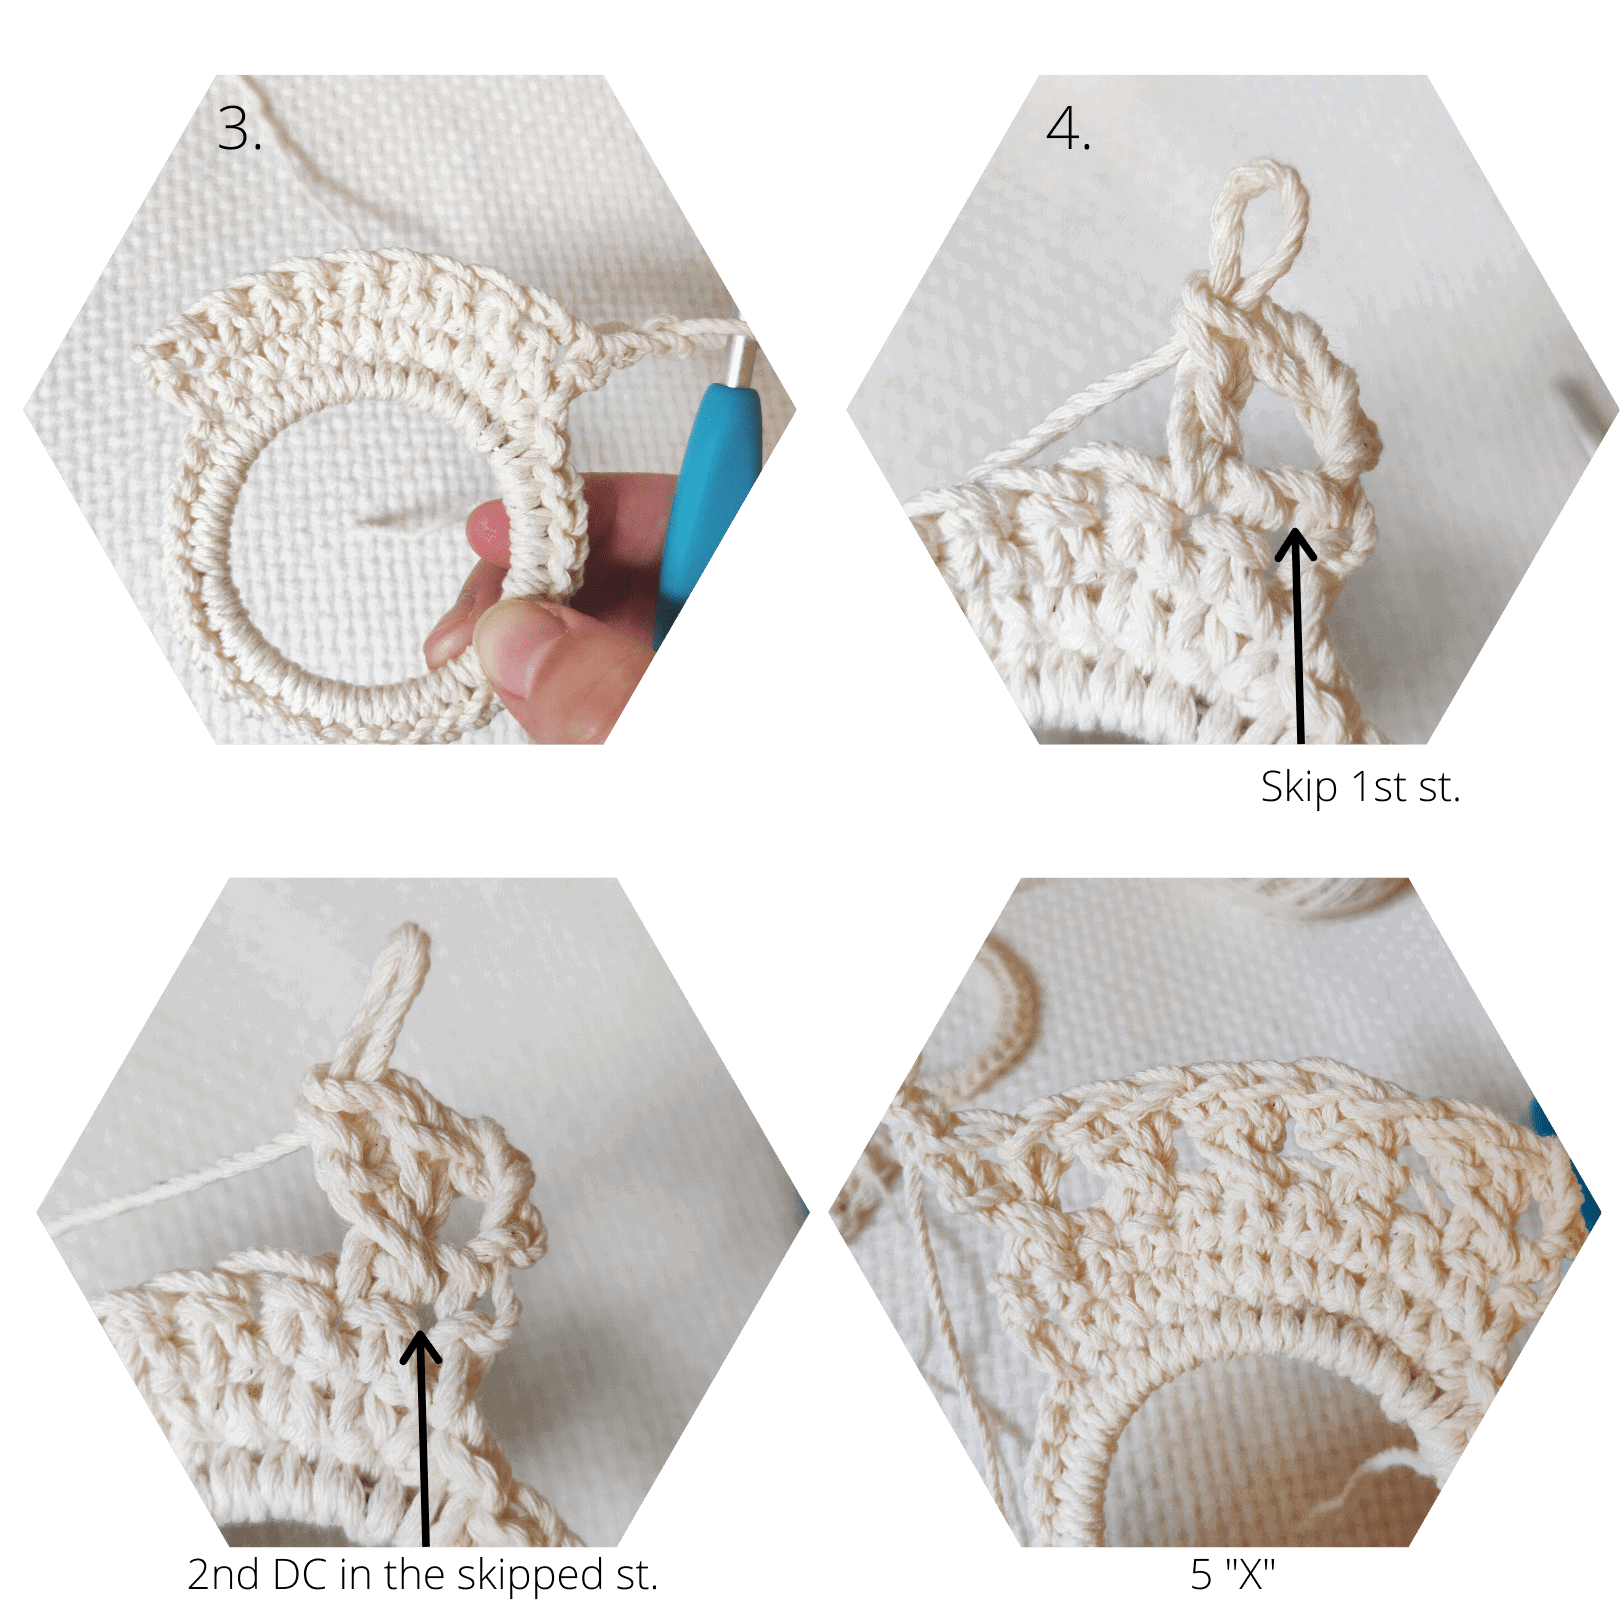 Crochet double crochet special technique how to.